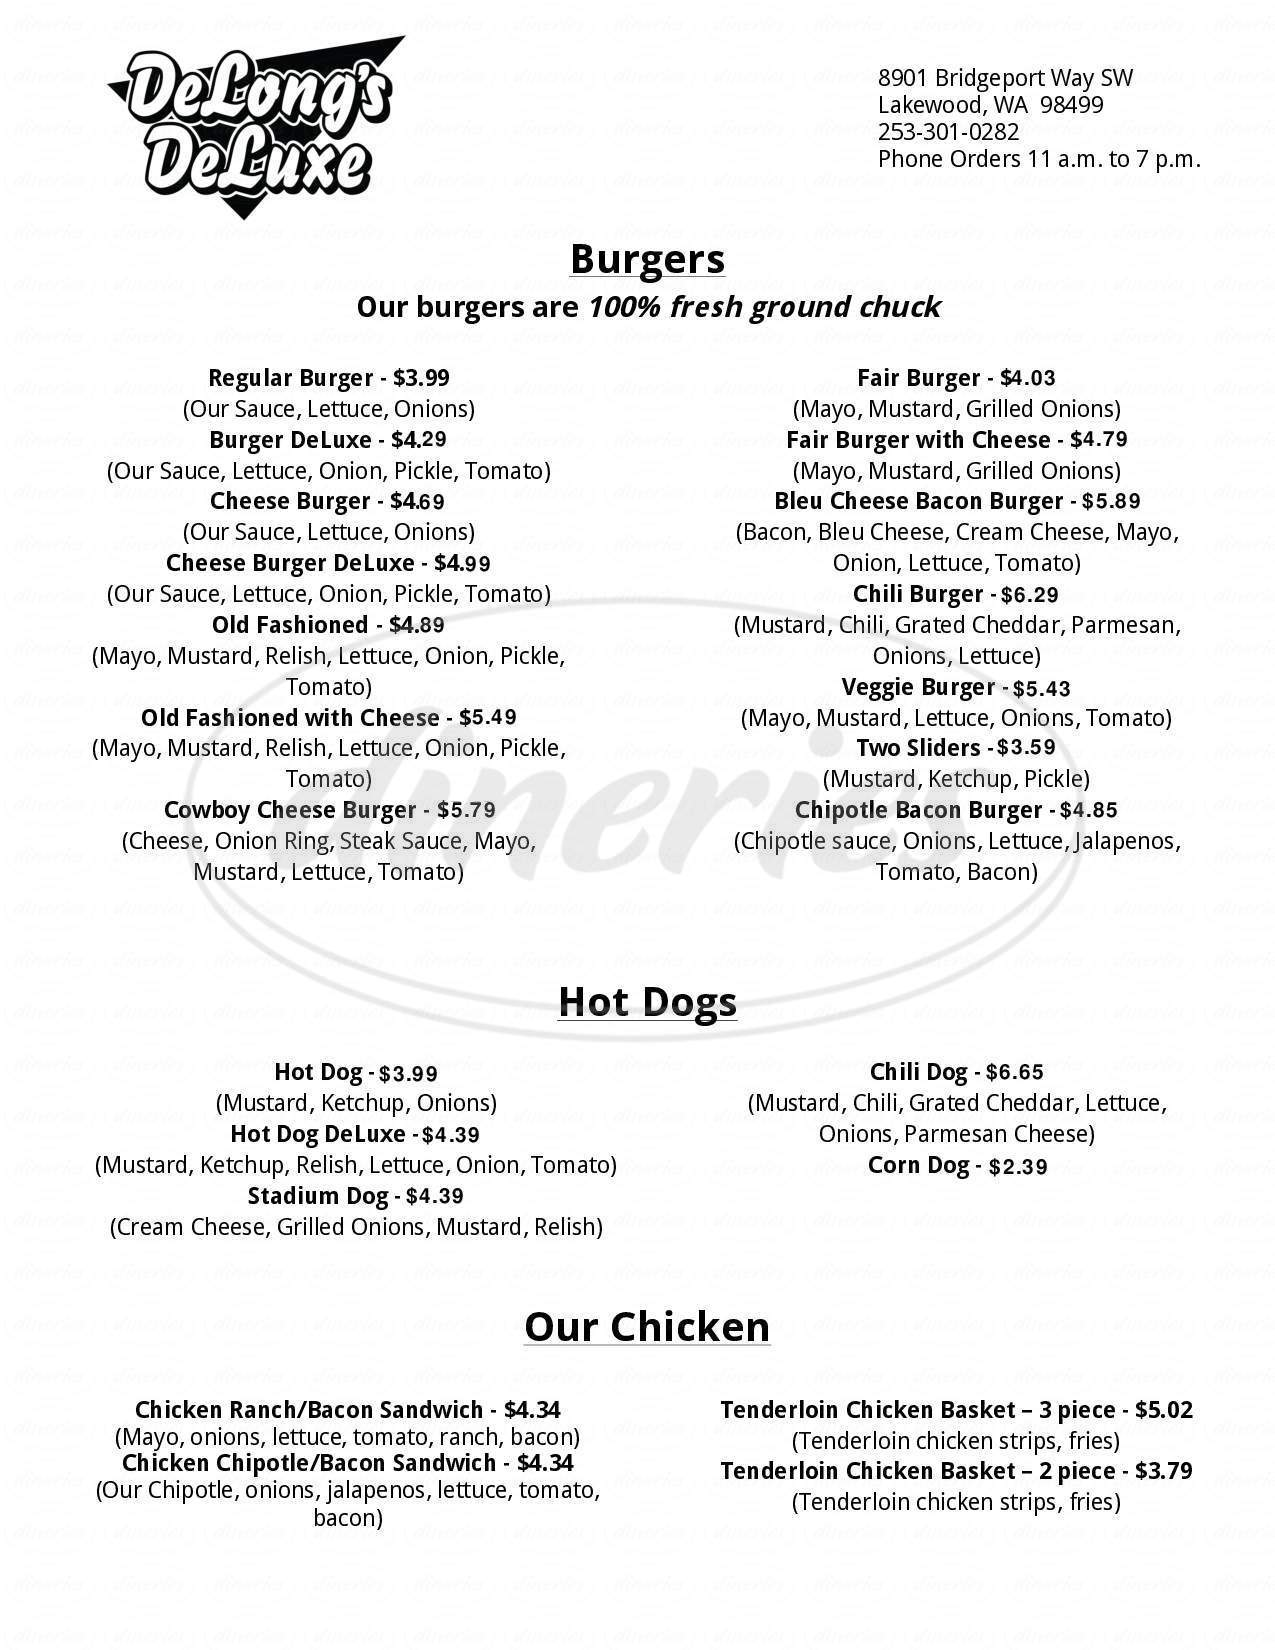 menu for DeLong's DeLuxe